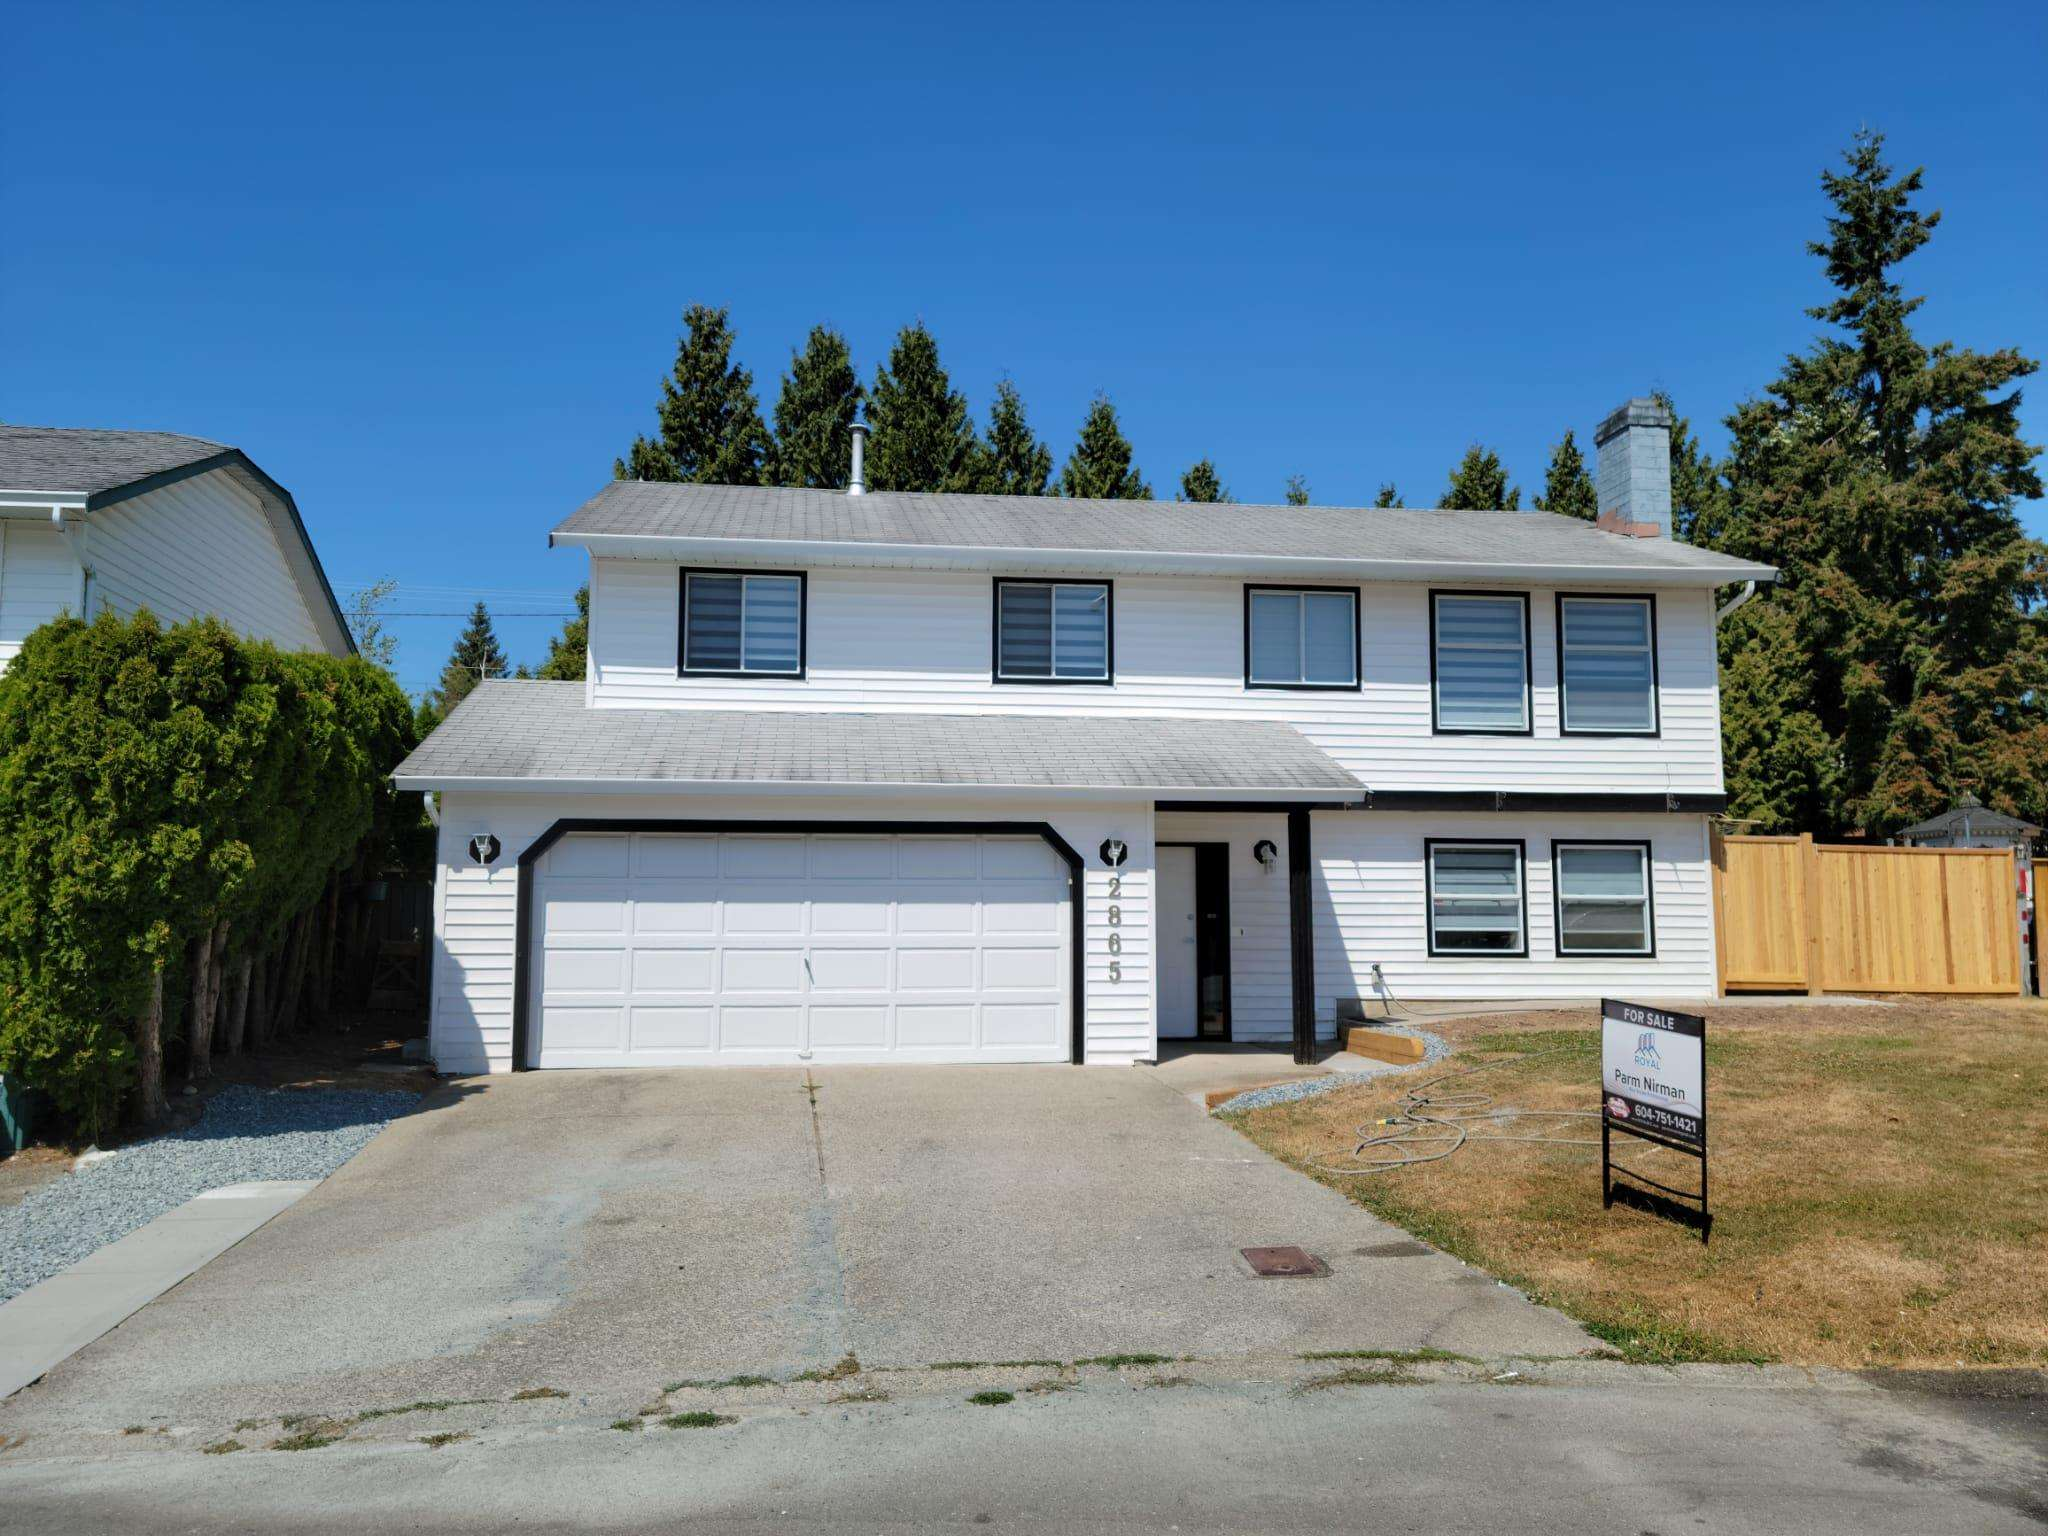 2865 GARDNER PLACE - Abbotsford West House/Single Family for sale, 5 Bedrooms (R2605175) - #1